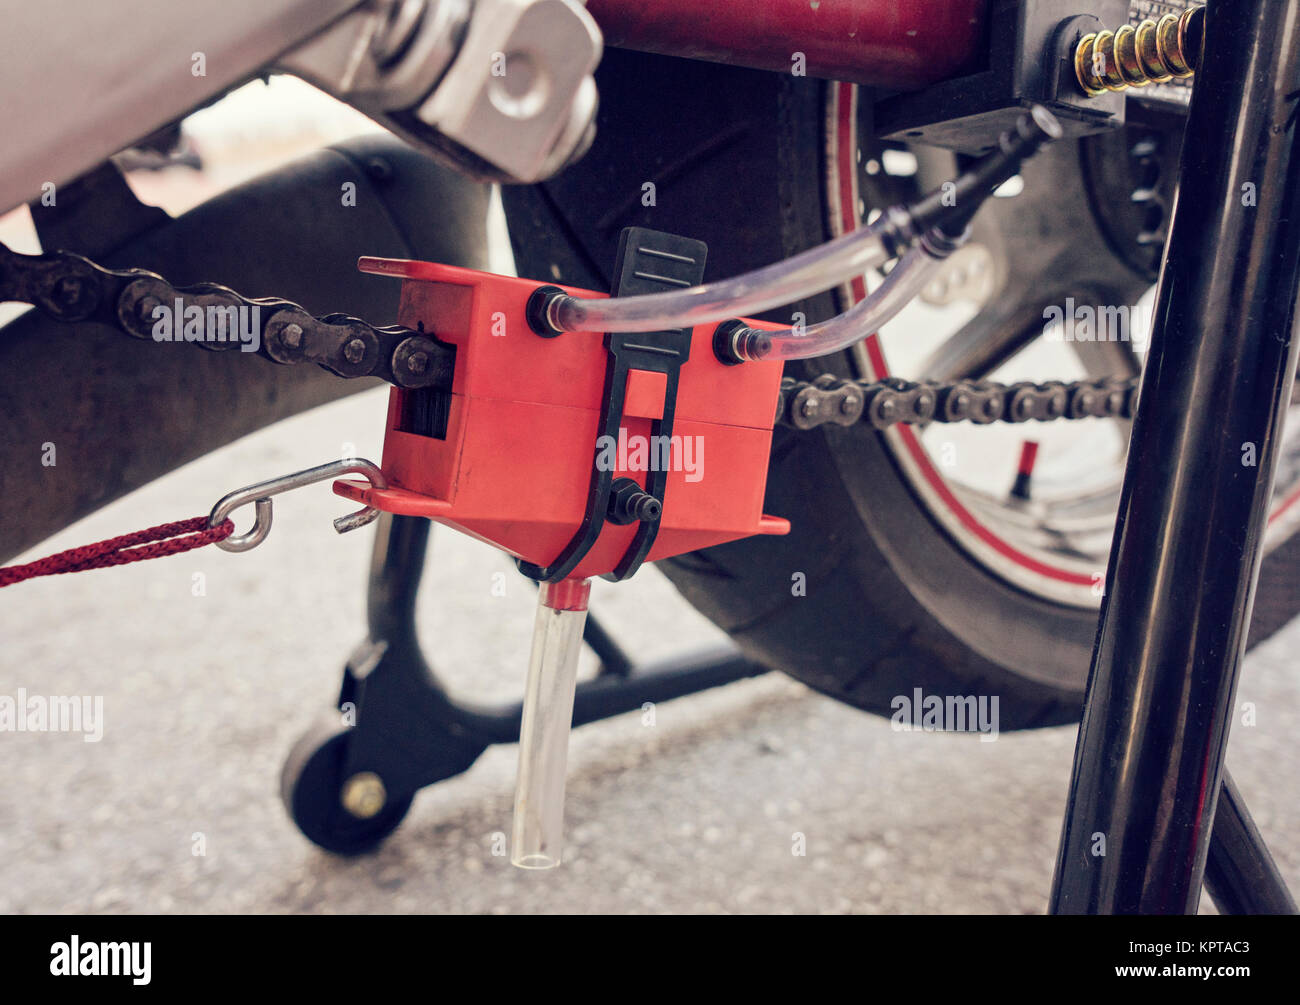 General view of motorcycle manual chain service - Stock Image